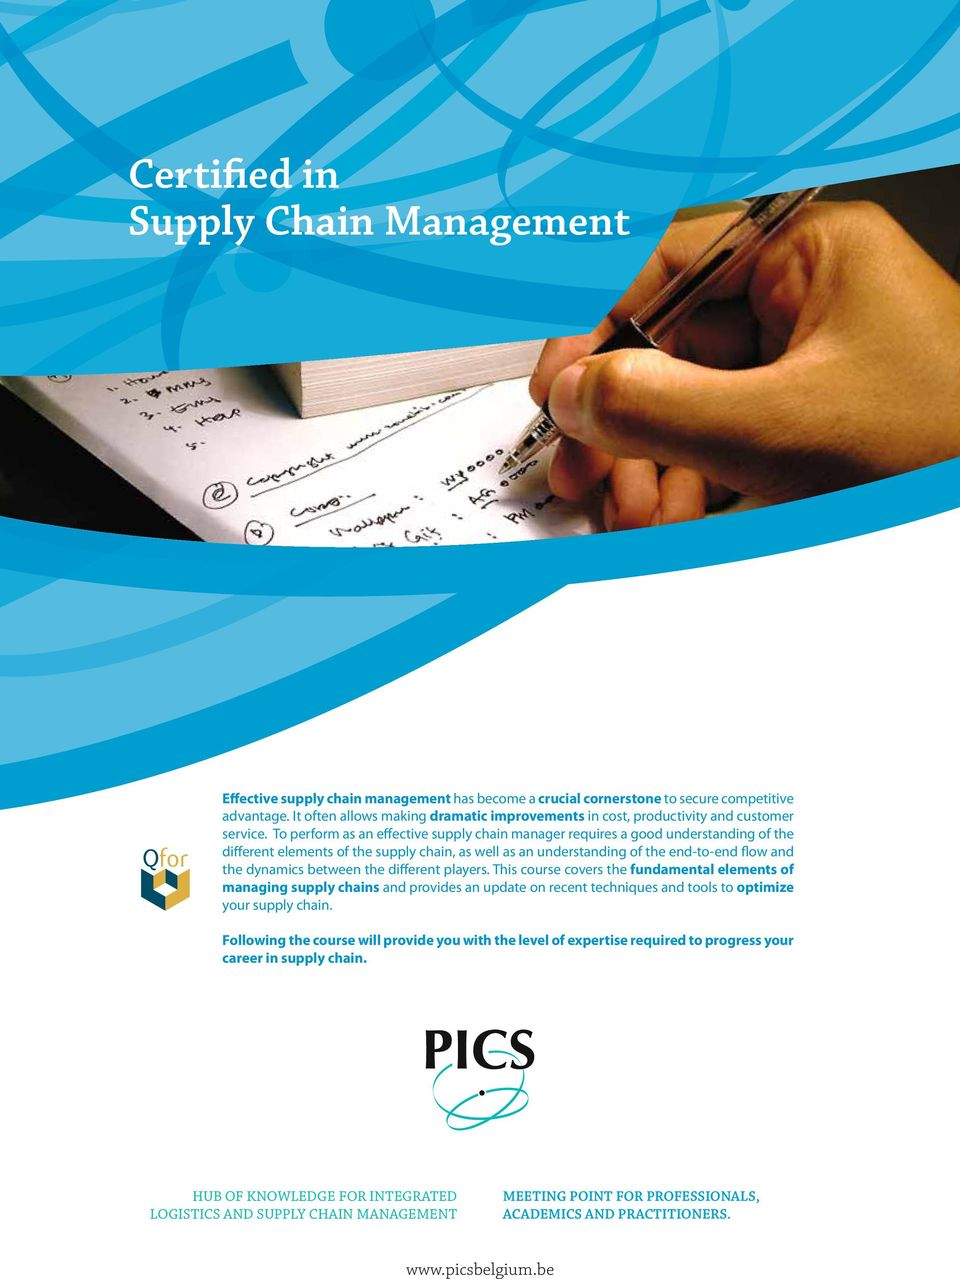 To perform as an effective supply chain manager requires a good understanding of the different elements of the supply chain, as well as an understanding of the end-to-end flow and the dynamics